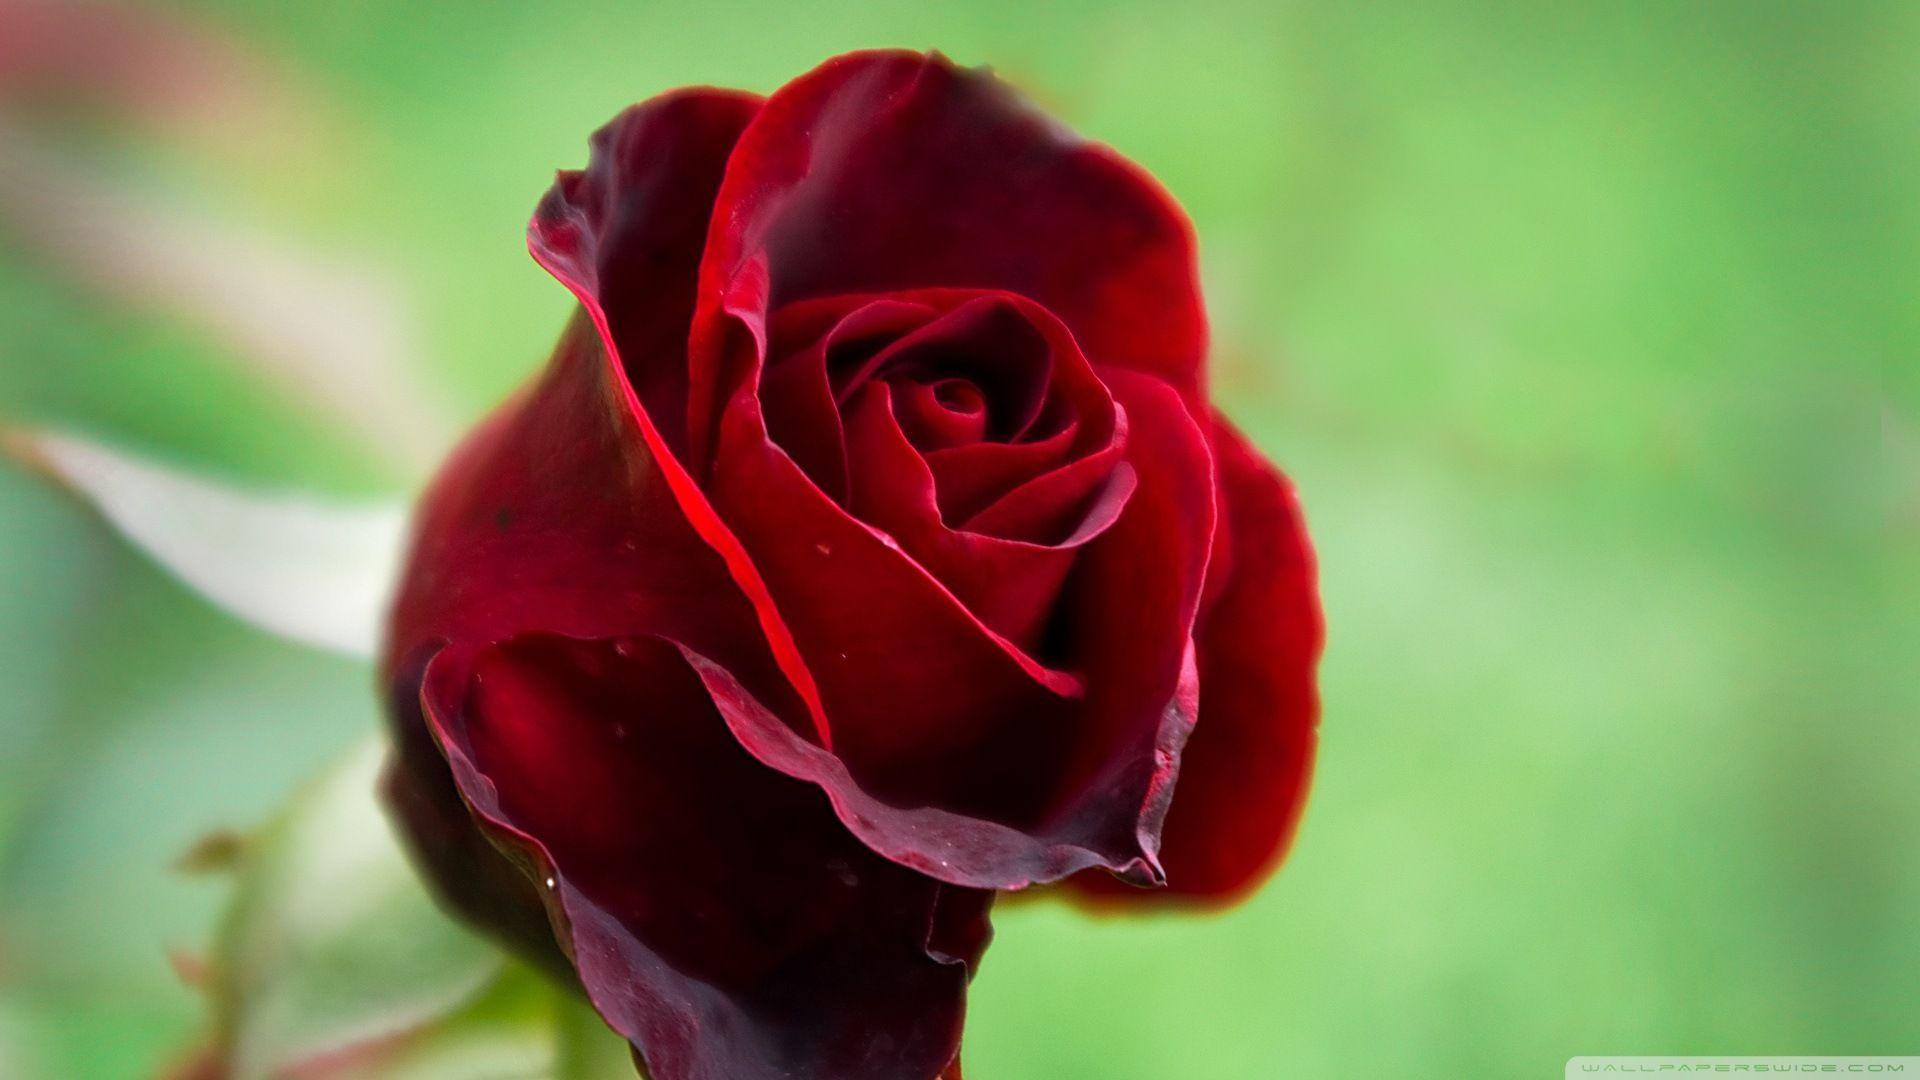 Flower Wallpapers Red Rose Wallpaper Cave